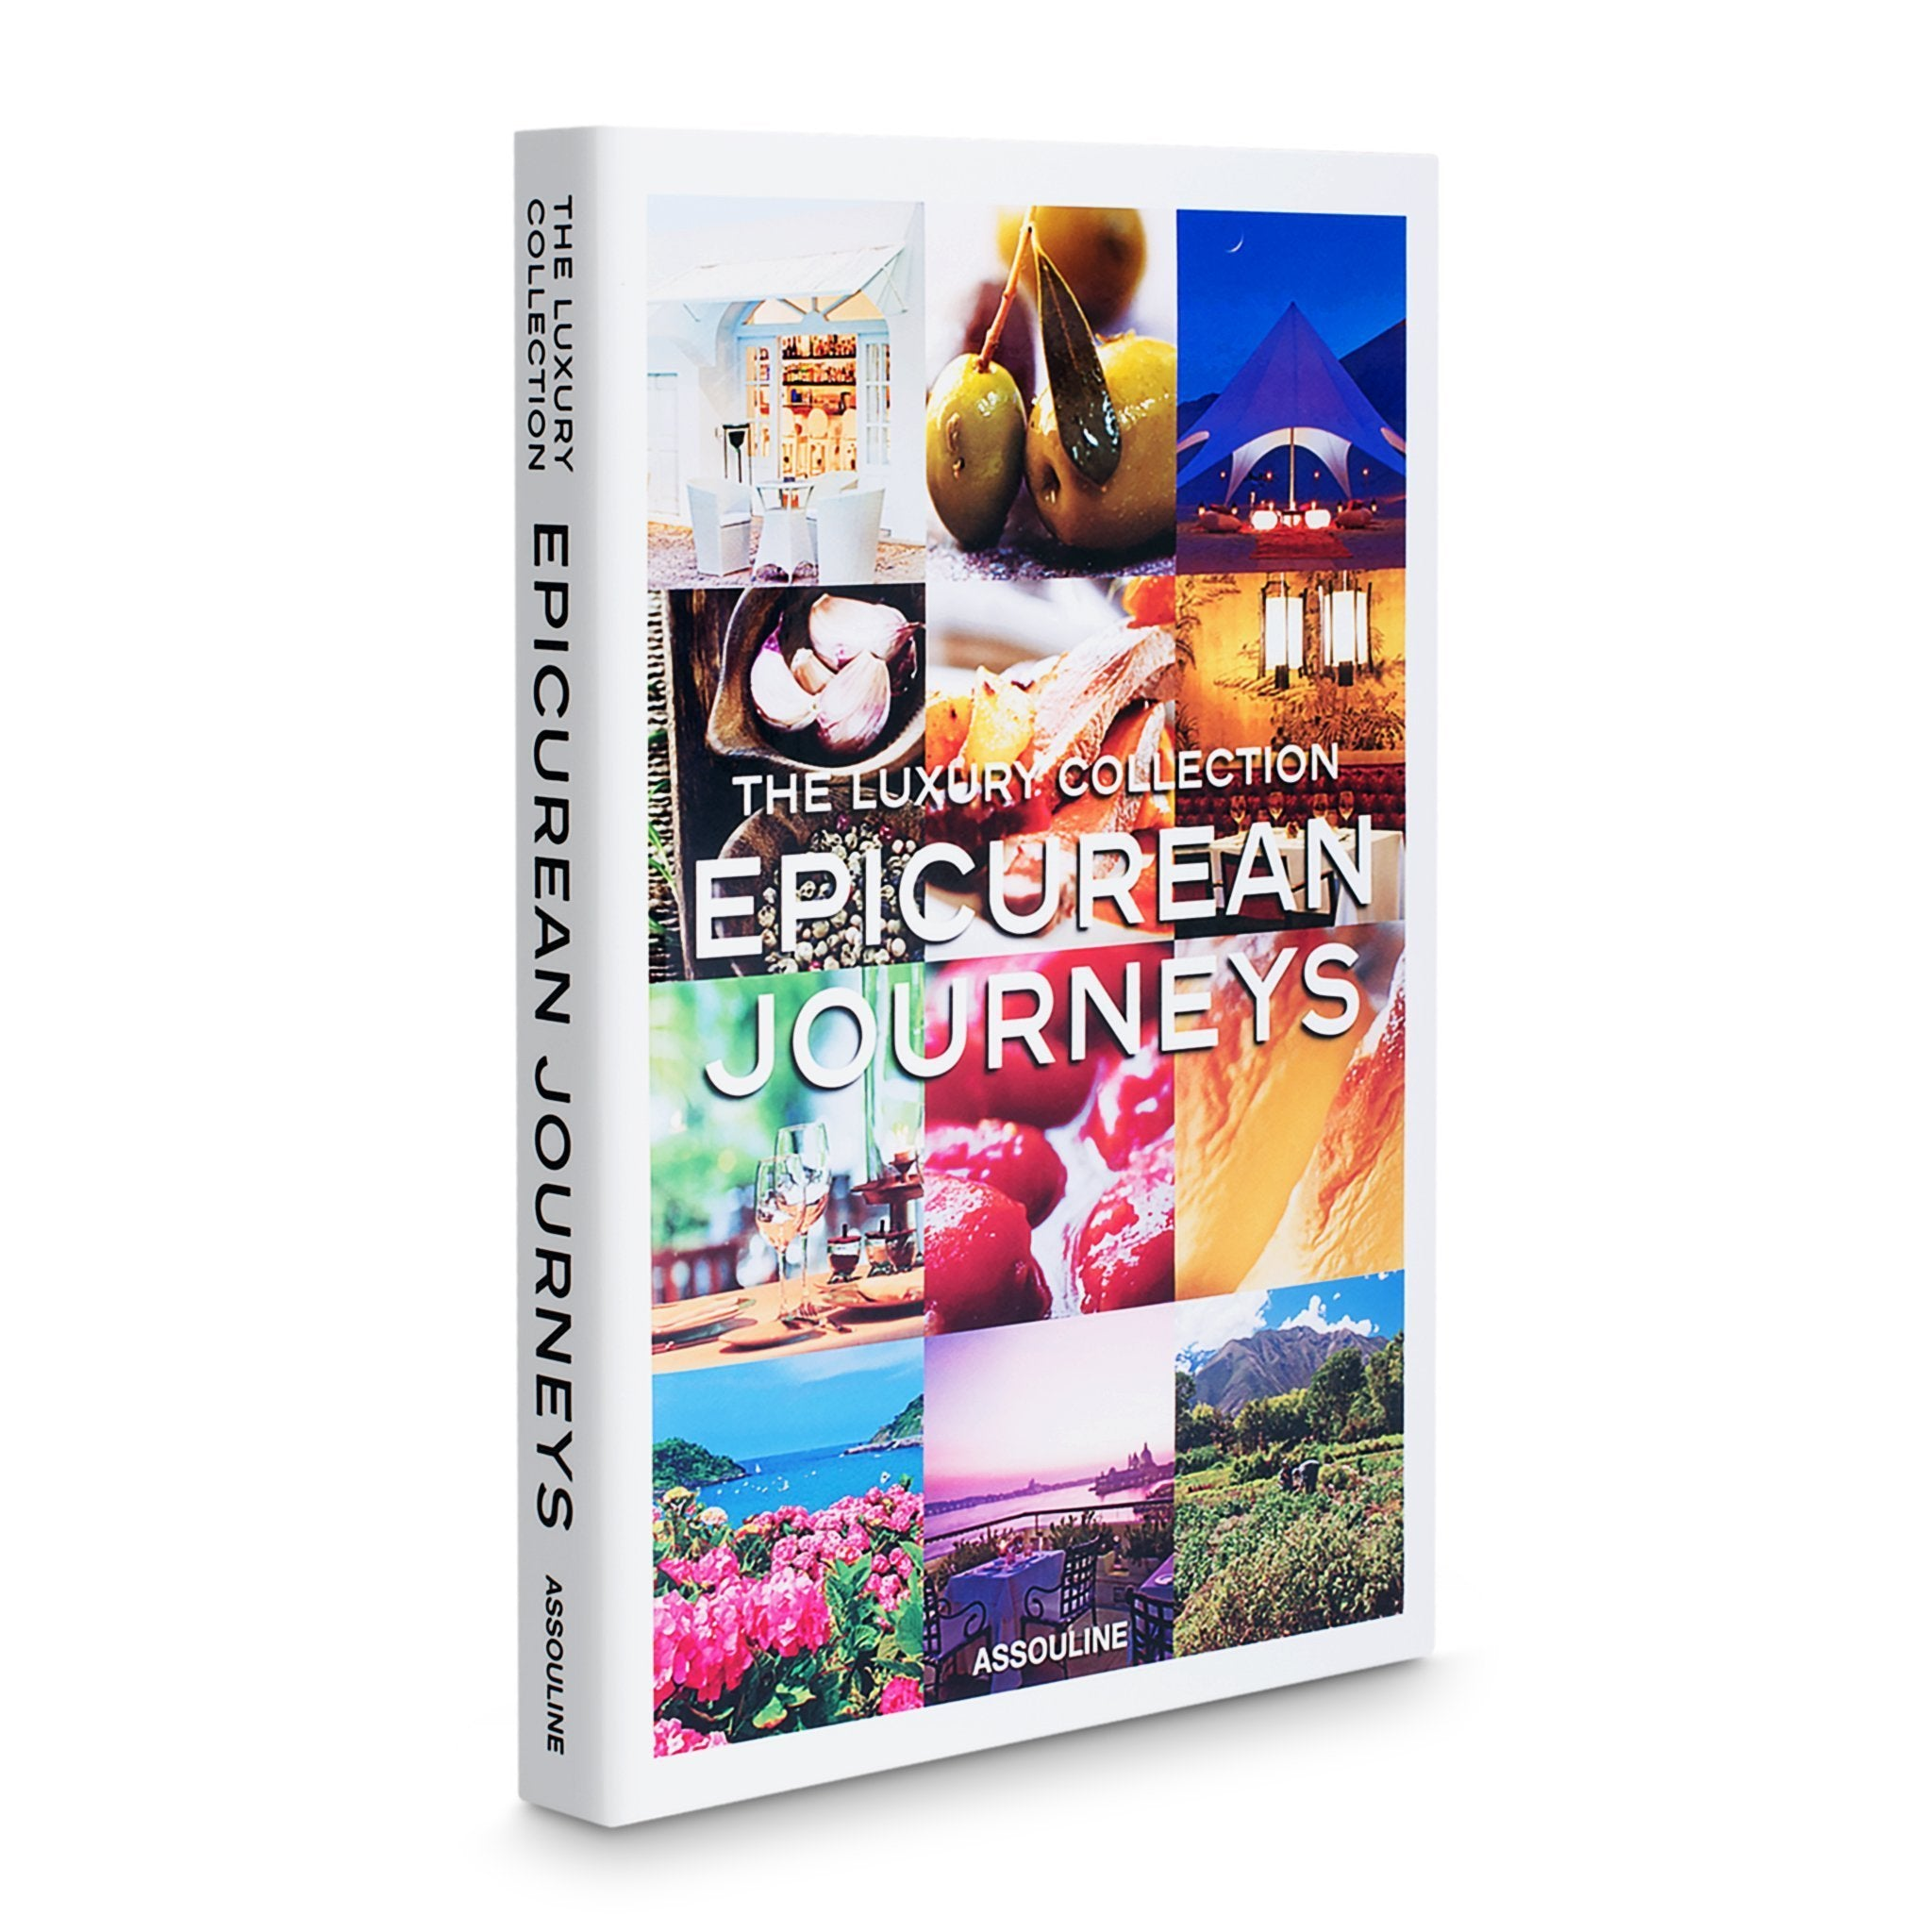 The Luxury Collection: Epicurean Journeys - Assouline